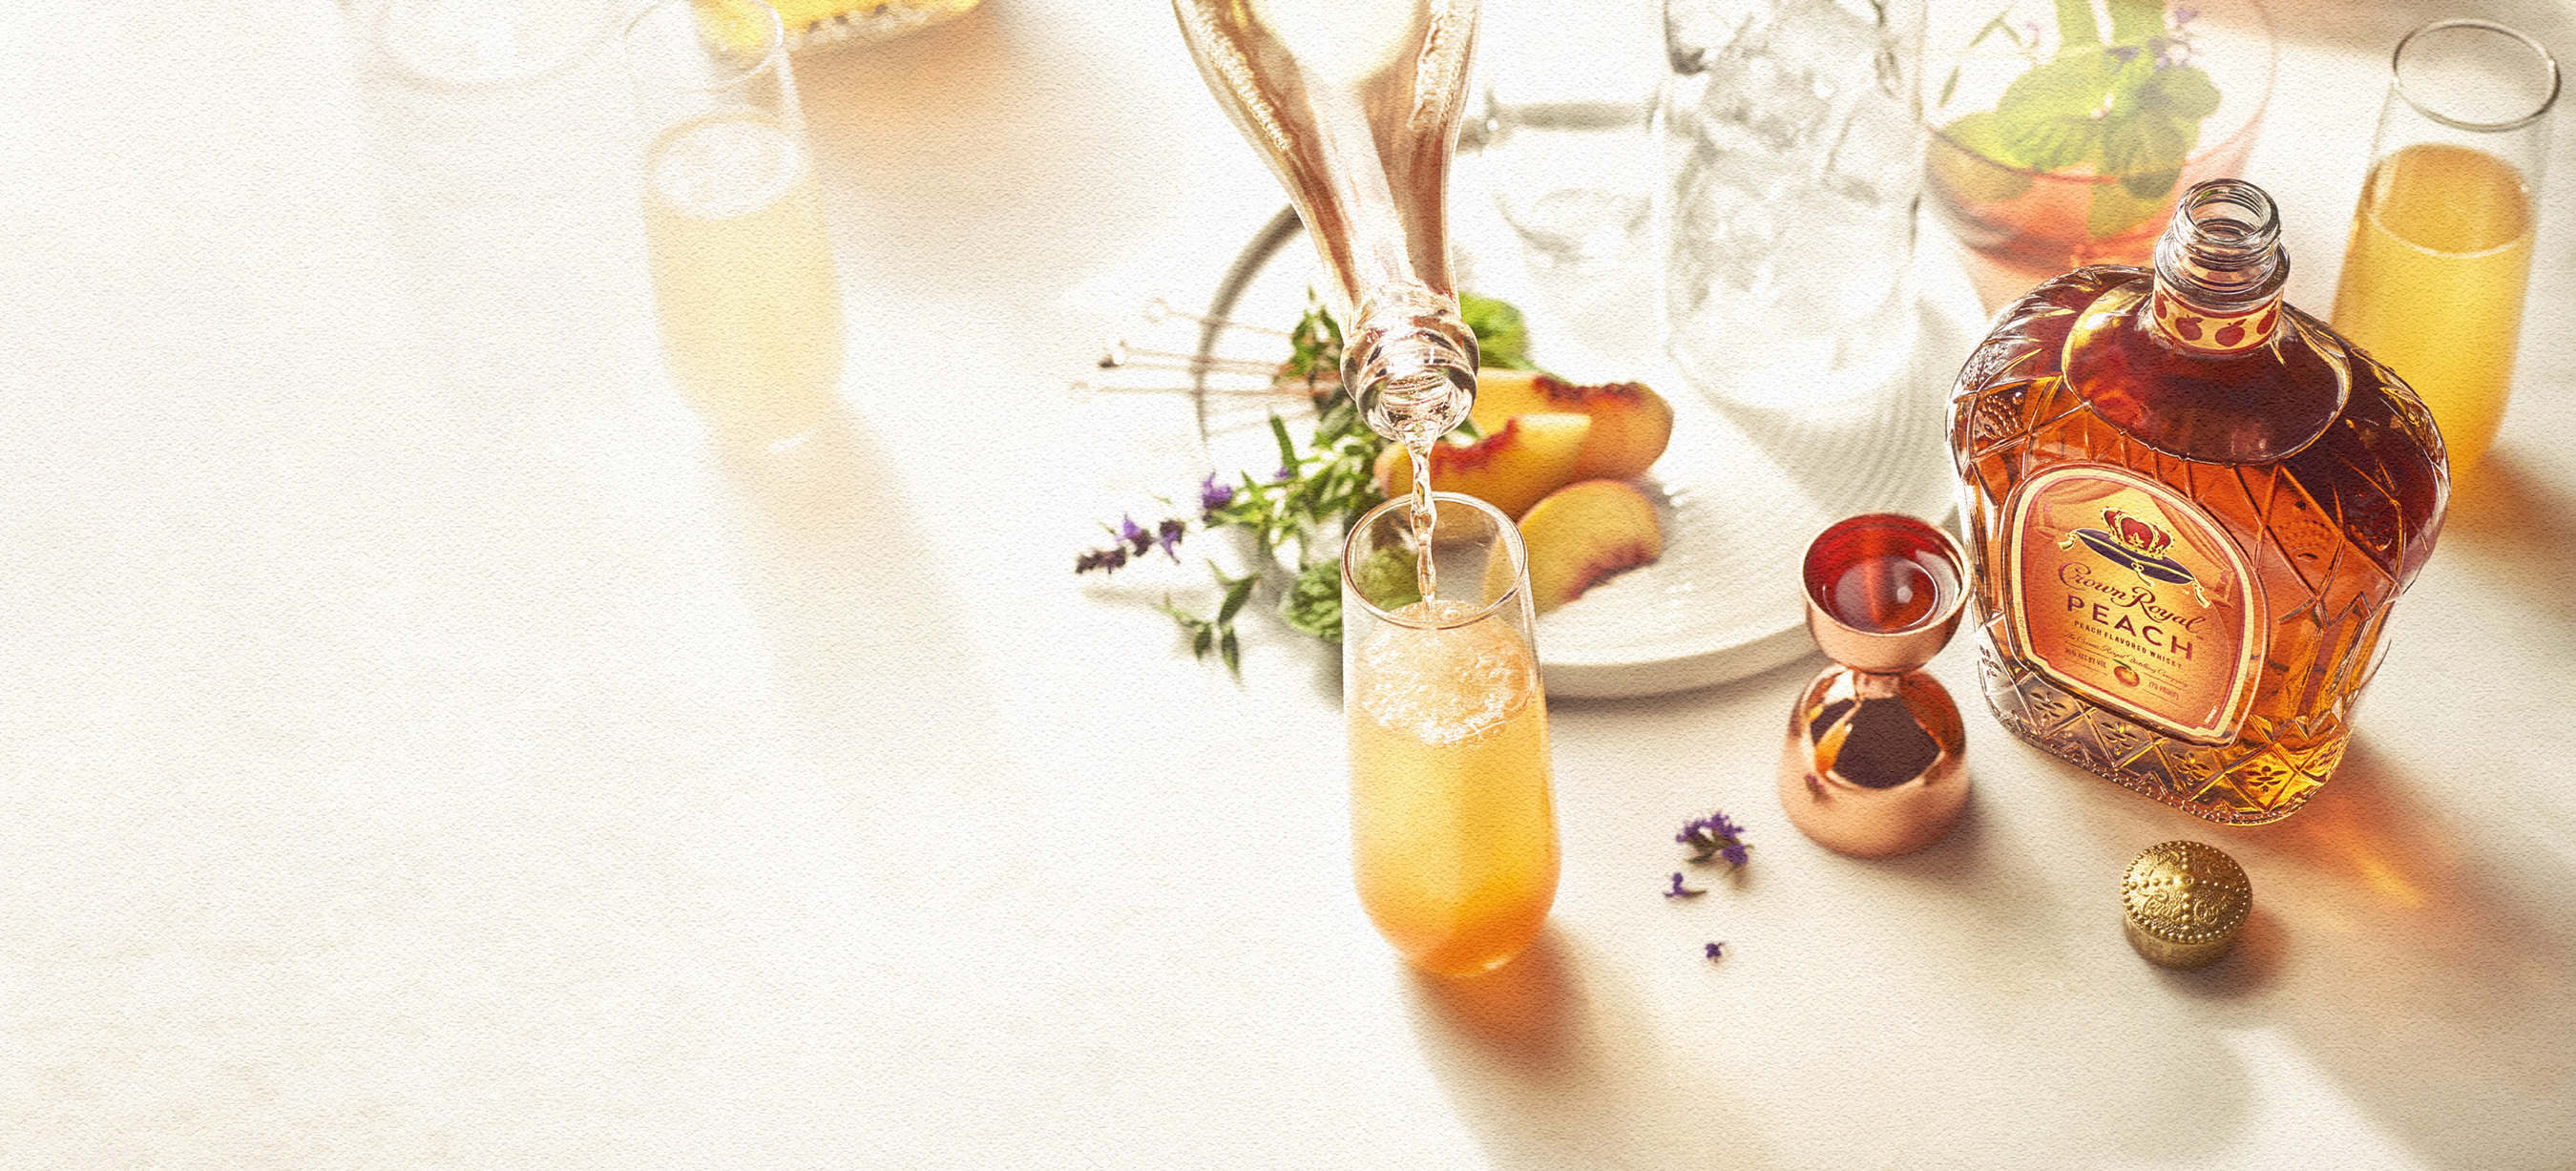 A Royal Peach Fizz is the peach perfect addition to an impromptu Sunday brunch at the trendiest rooftop patio in town.